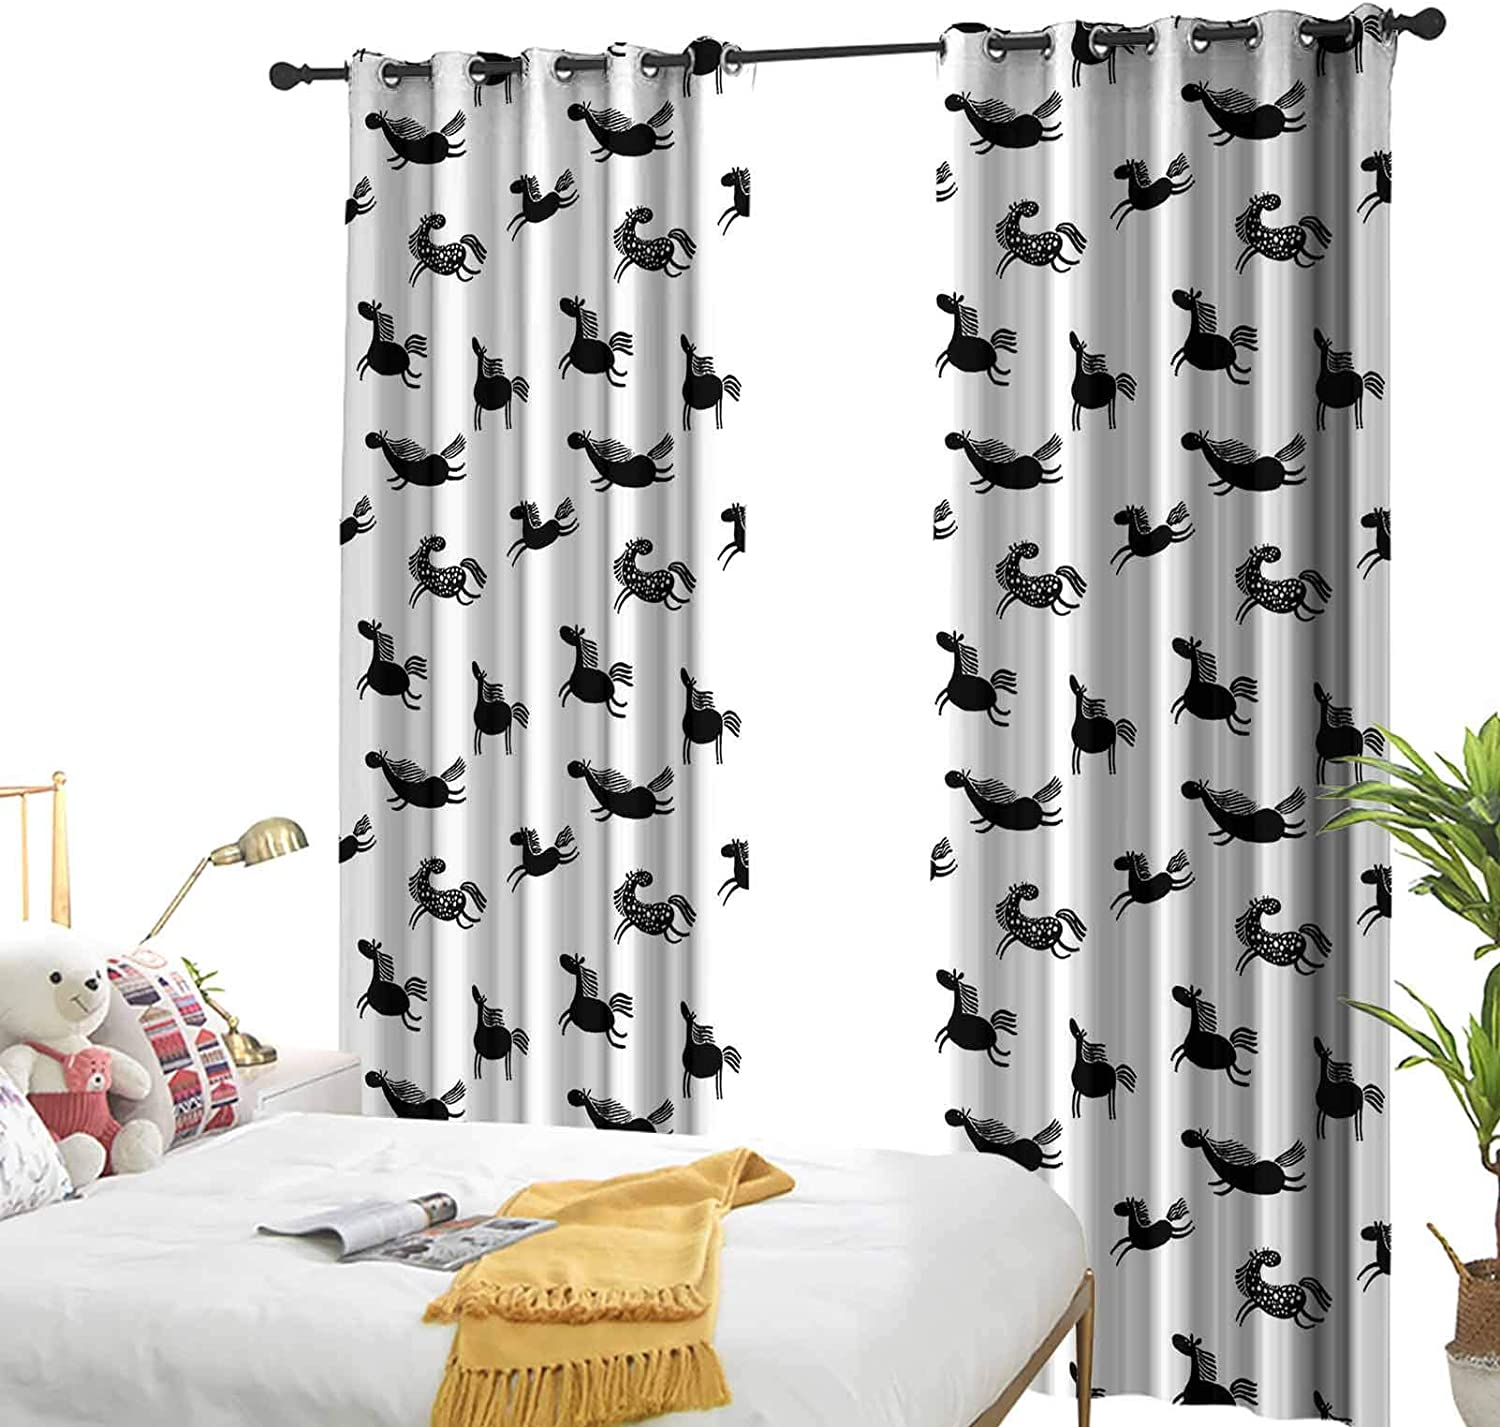 Horses Popular products Curtains Blackout Drapery Max 67% OFF Cute Doodle Pattern Equidae Mon